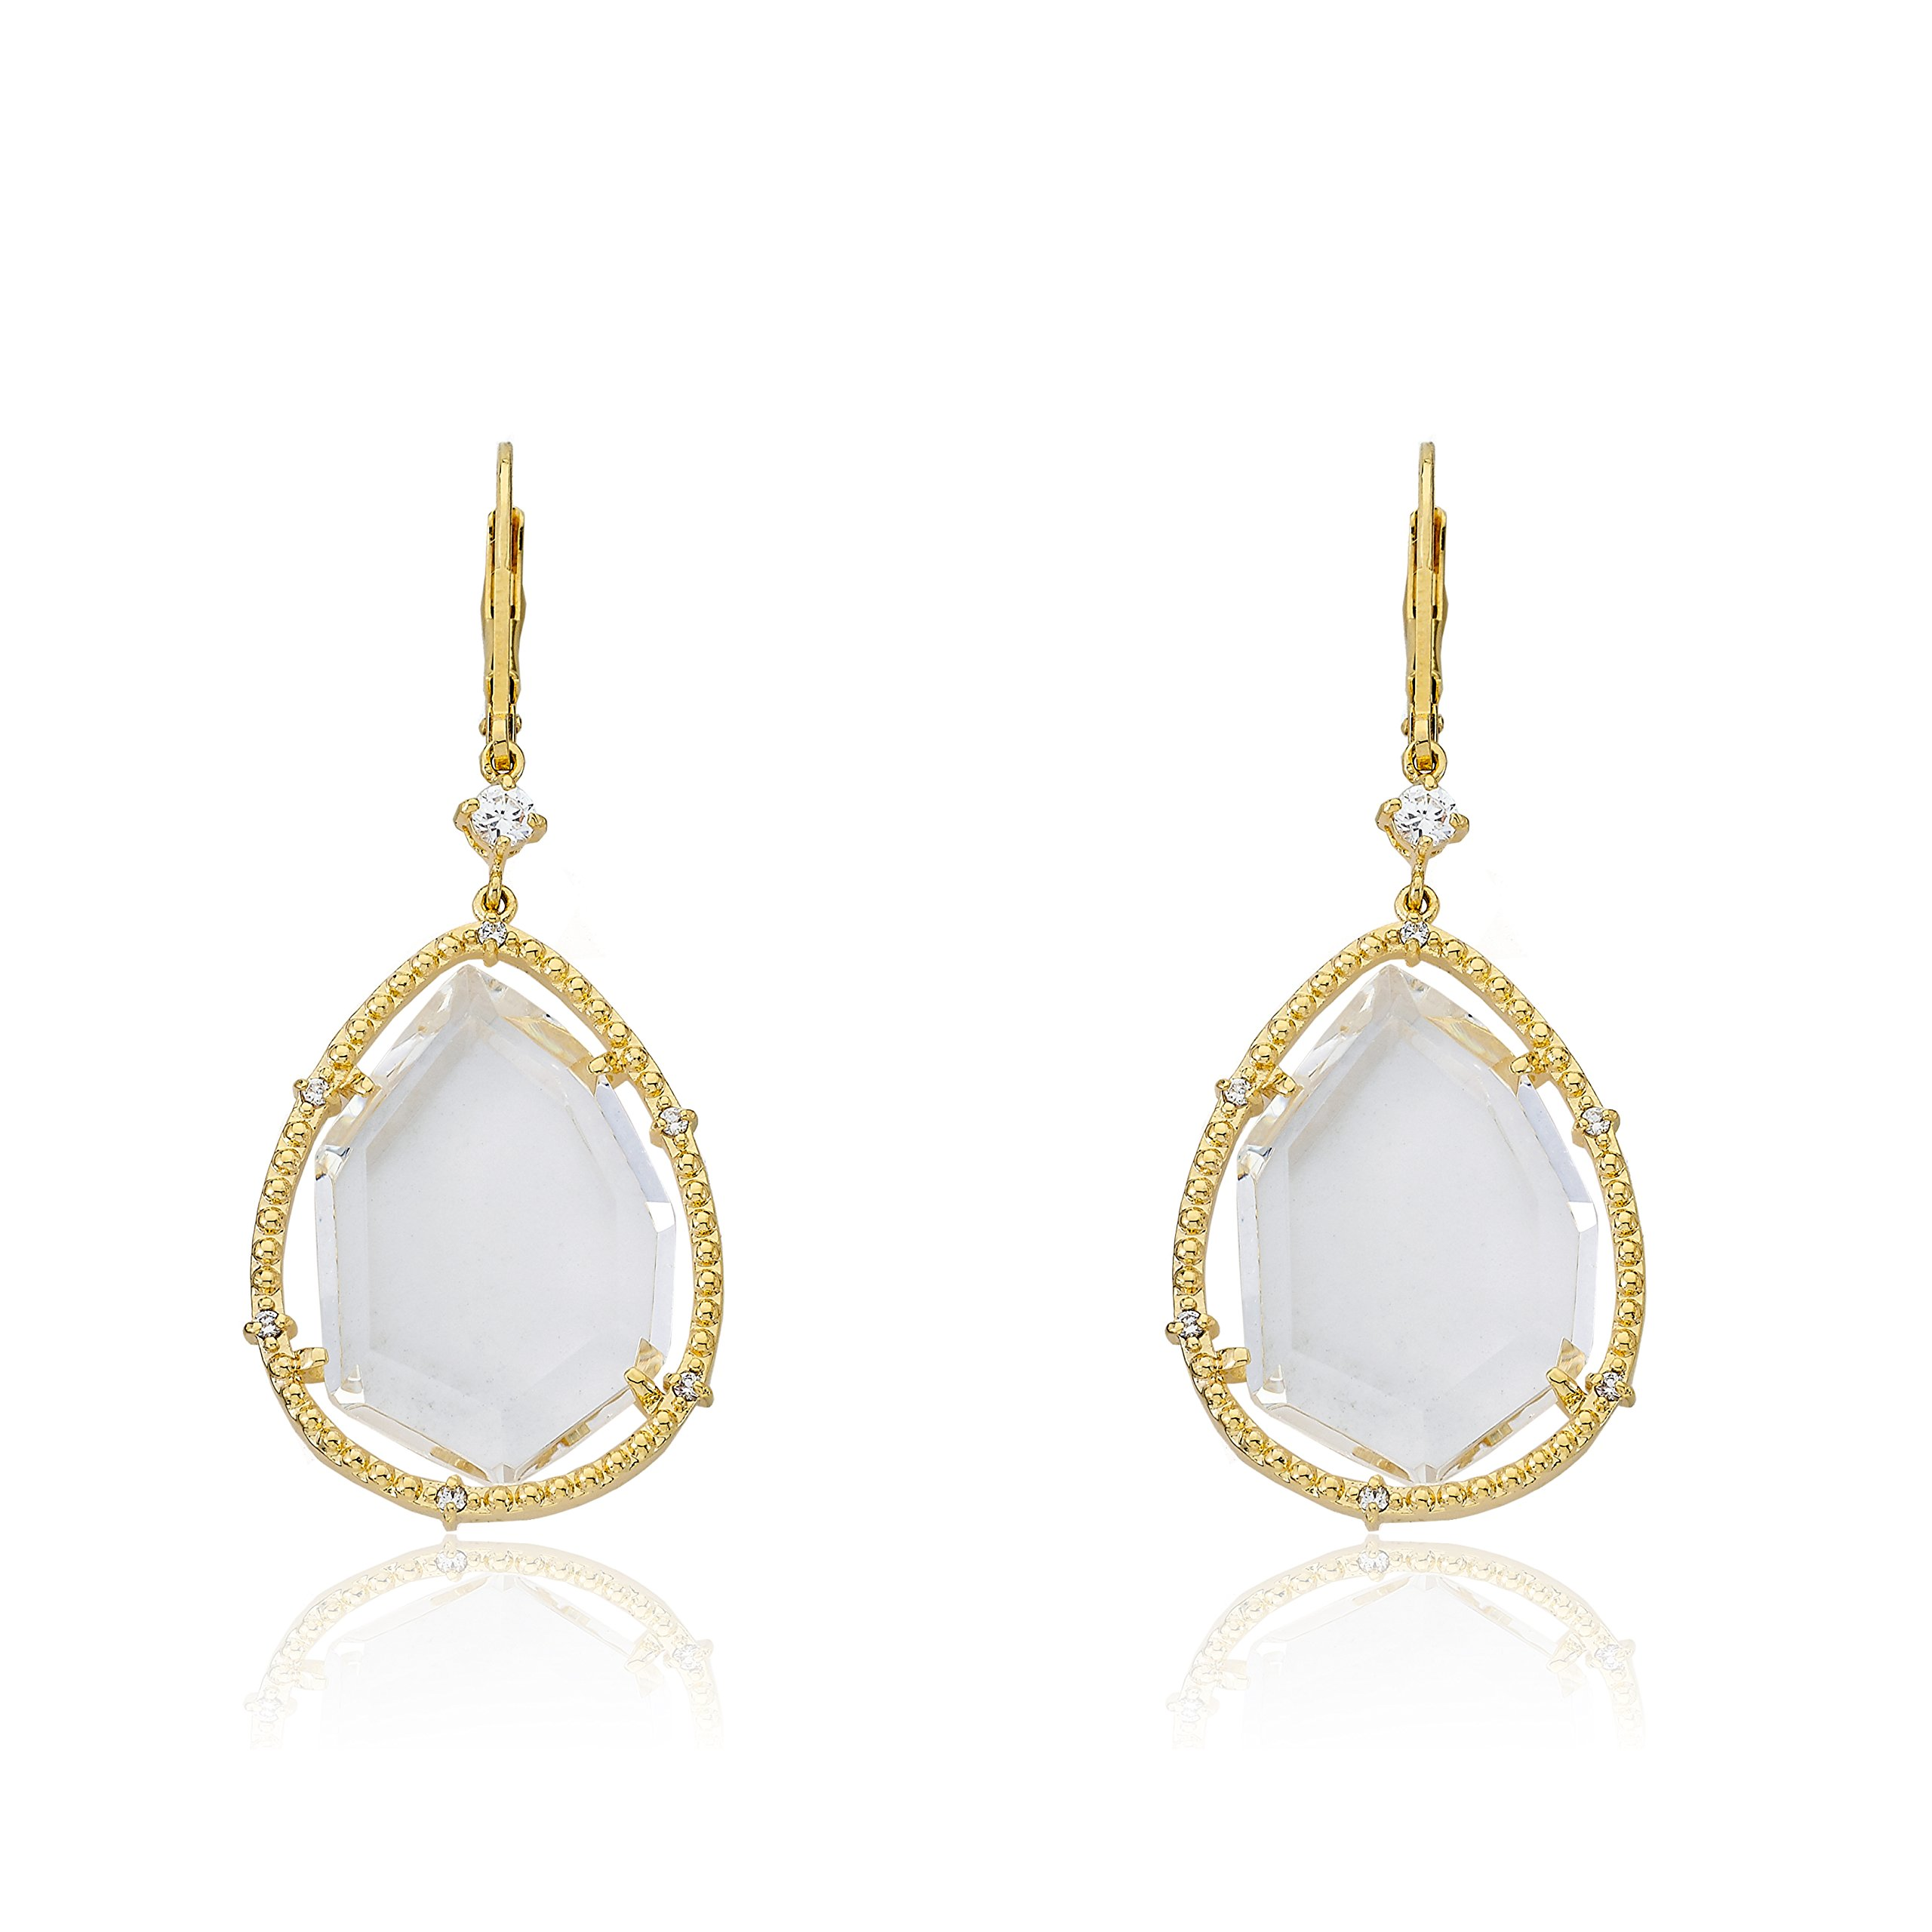 Riccova Sliced Glass 14k Gold-Plated CZ Trimmed Clear Sliced Glass Teardrop Dangle Earring